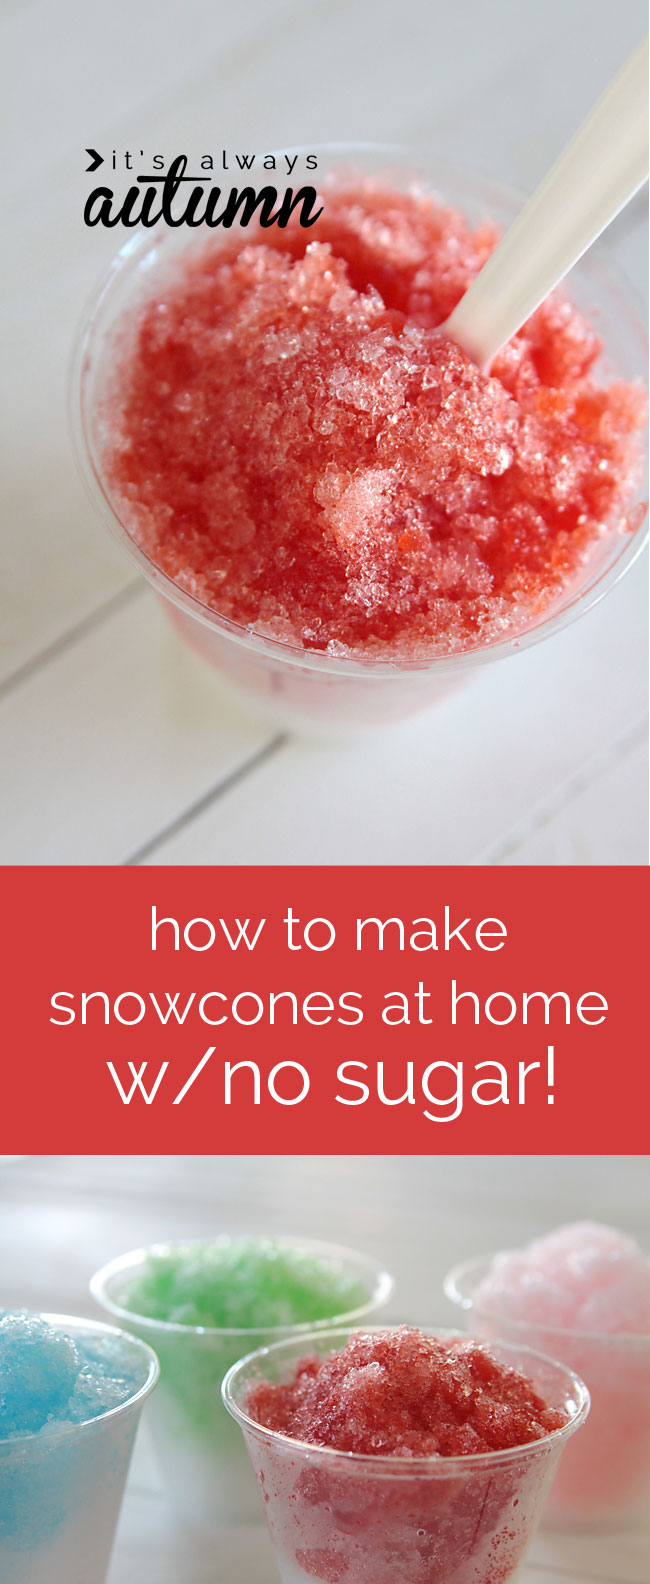 so cool! you can make homemade snow cones & sugar free syrup at home! any flavor